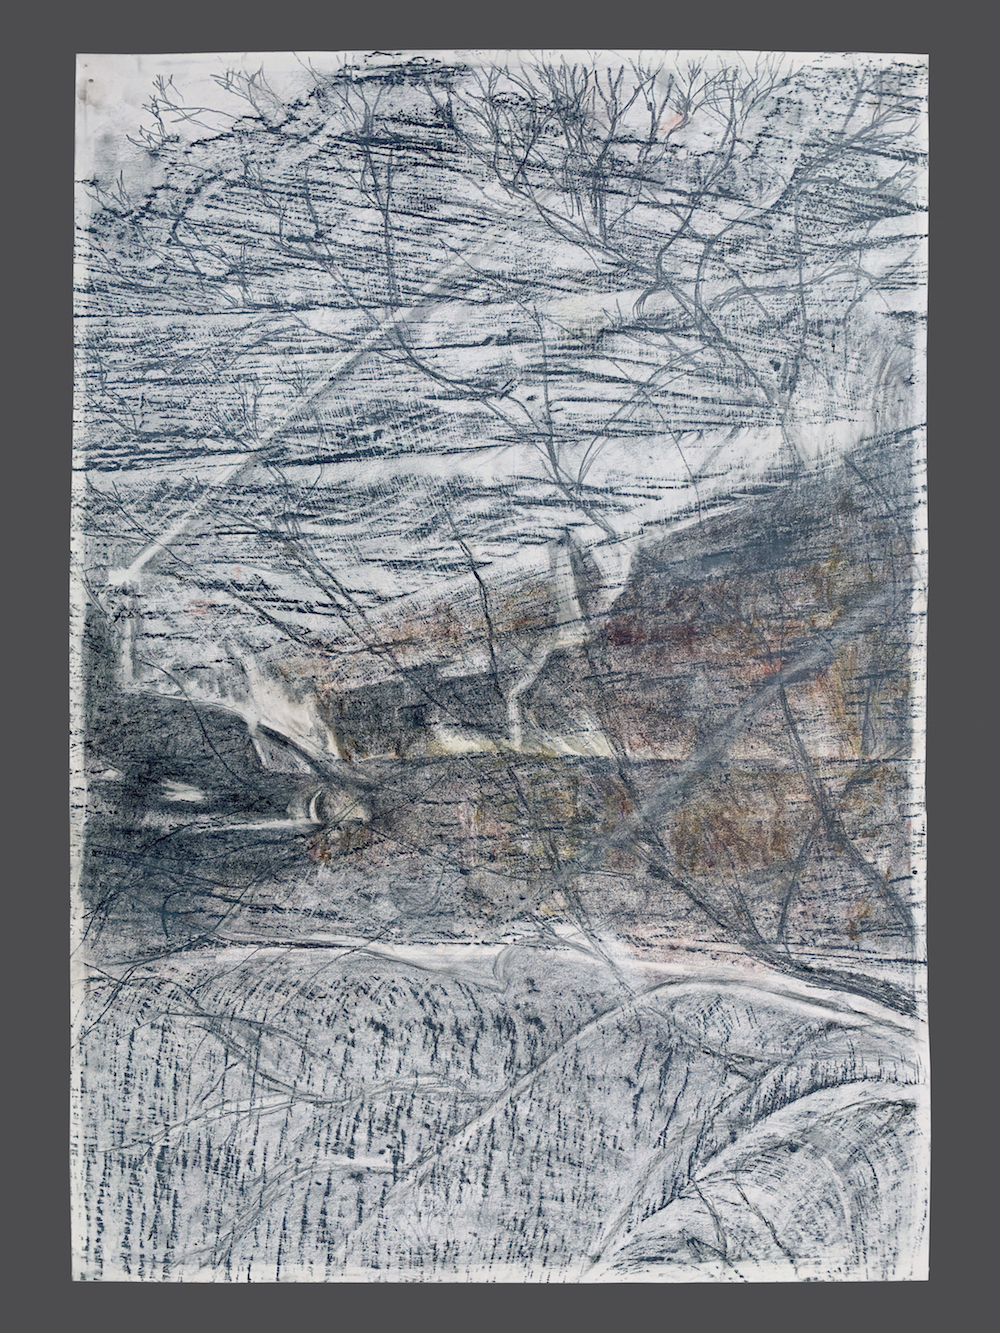 "alt=""drawing, graphite, image layered over text, The Camp Fire in California & Baltimore City fires"